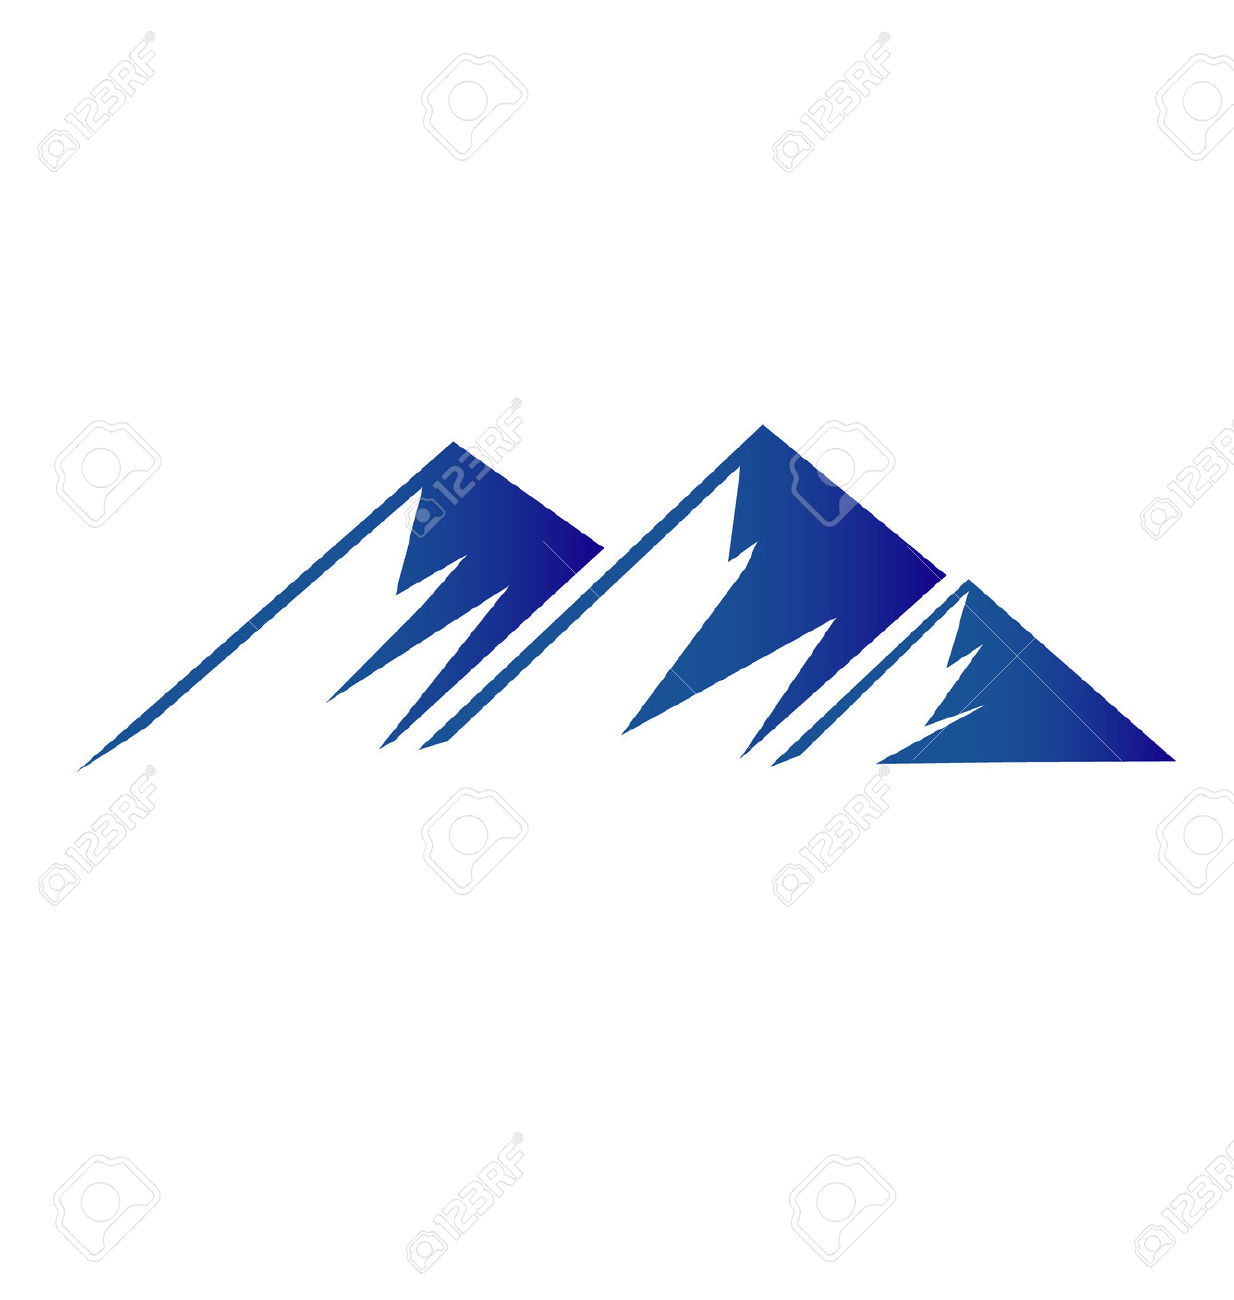 Mountain clipart mountain summit National  Google Search national